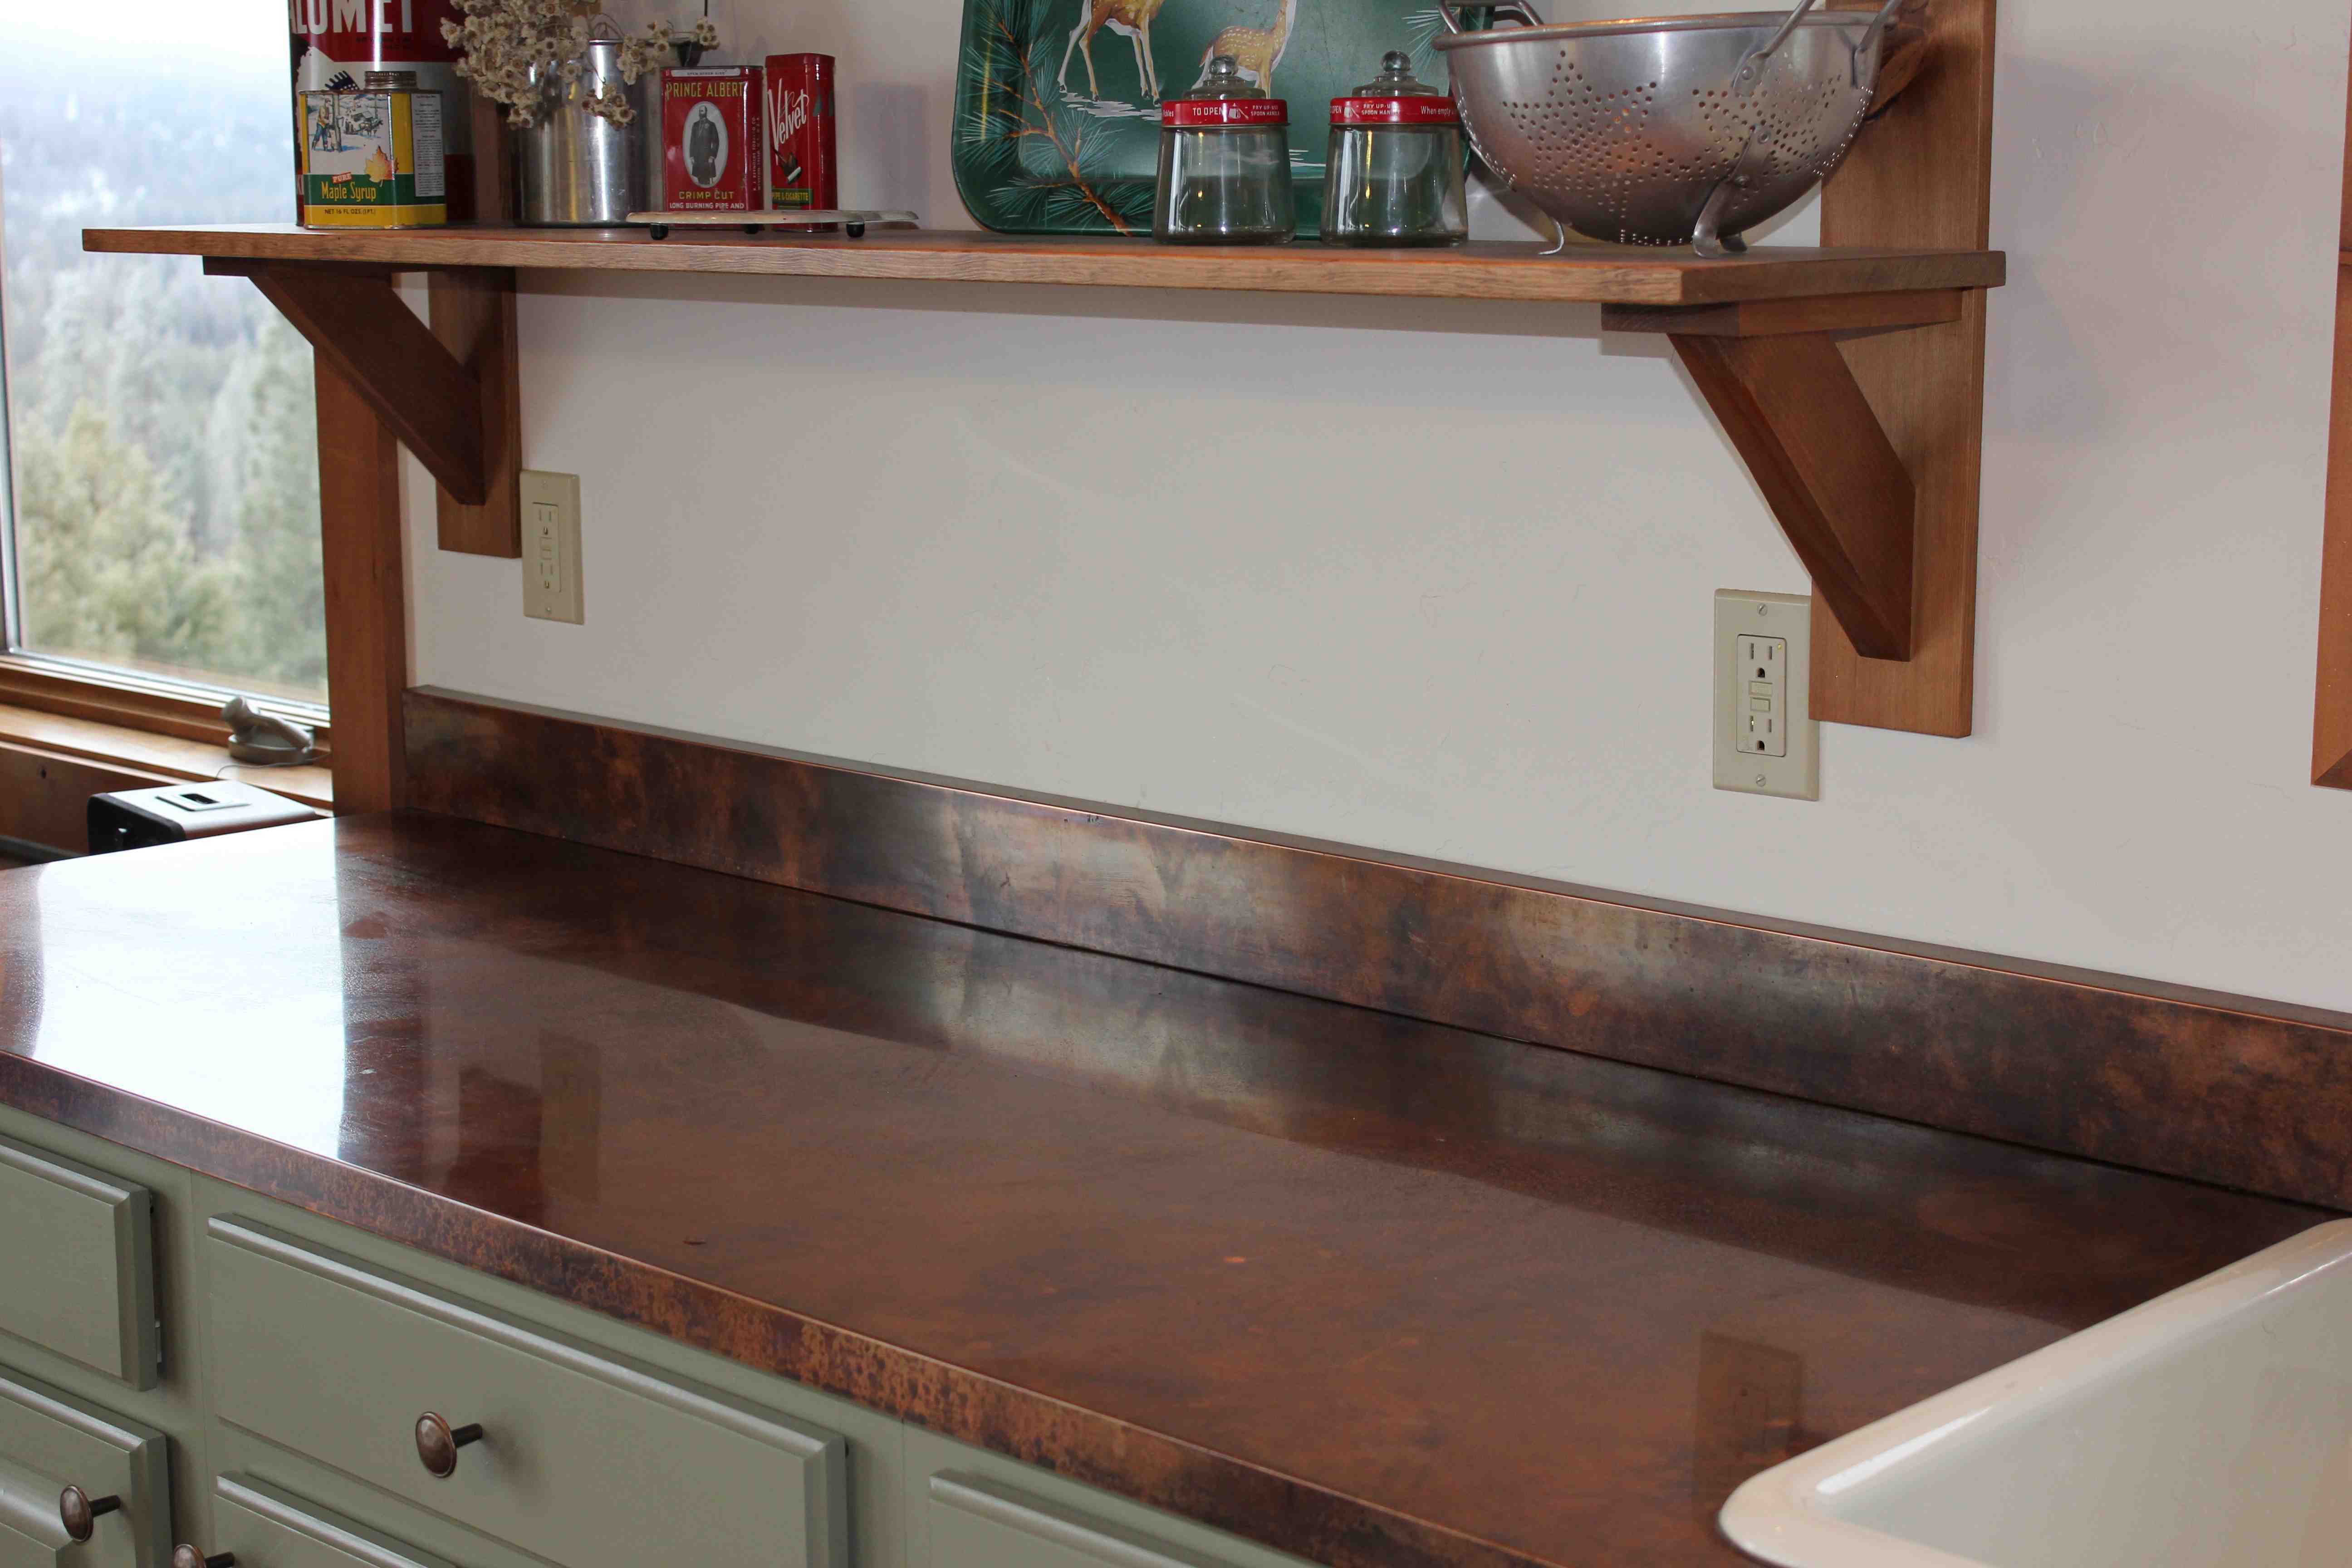 copper kitchen countertops personalized towels at camp more